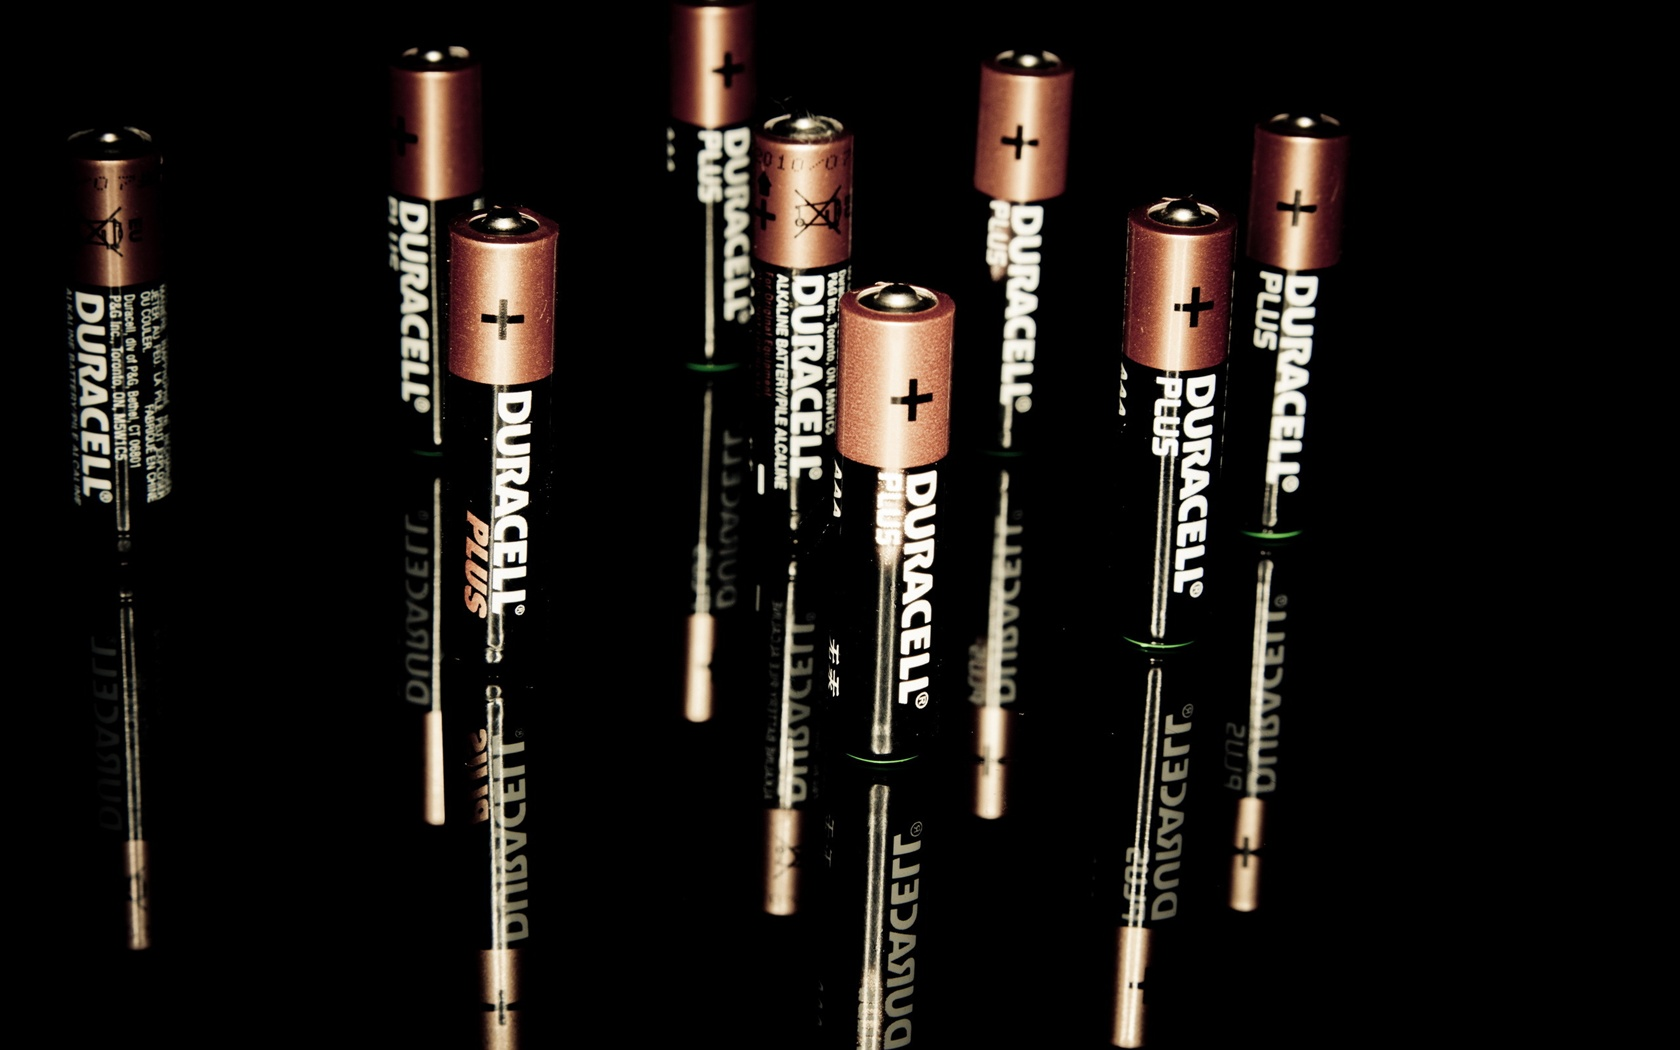 Wallpaper Duracell battery 2560x1600 HD Picture Image 1680x1050